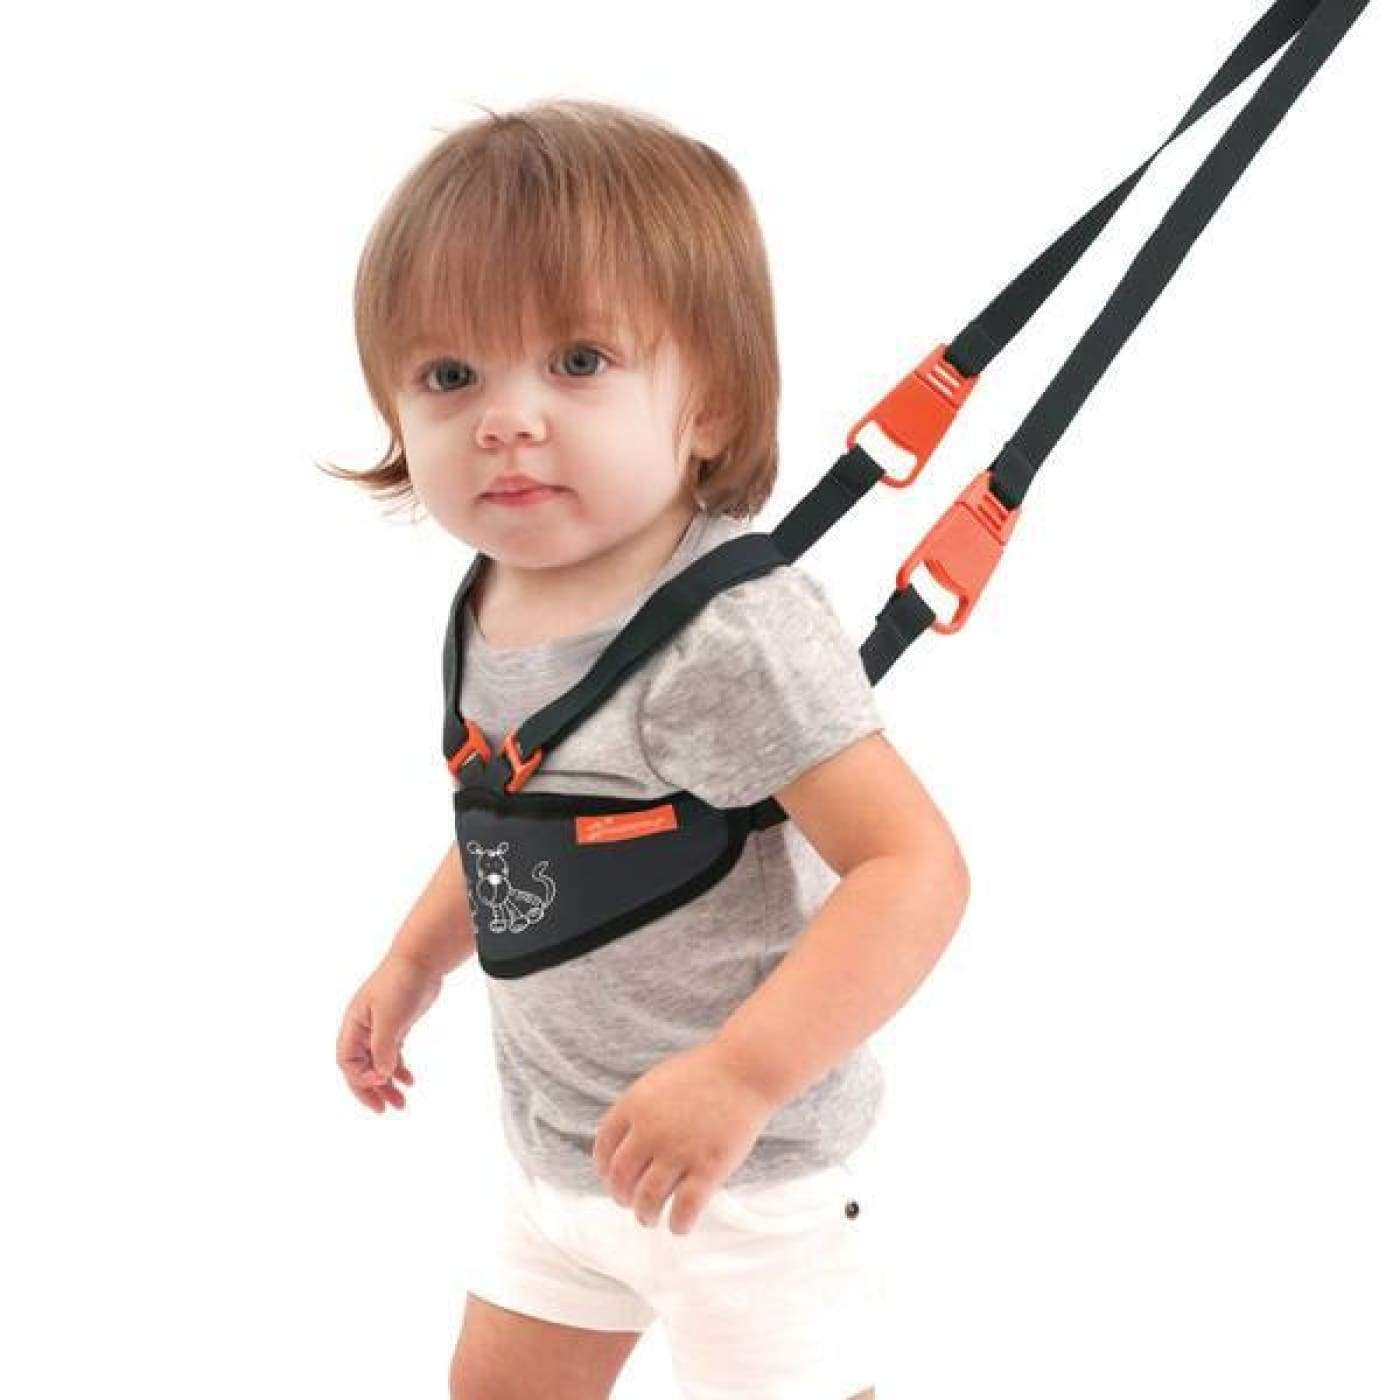 Dreambaby Deluxe Safety Walking Harness - Tiger - ON THE GO - SAFETY HARNESSES